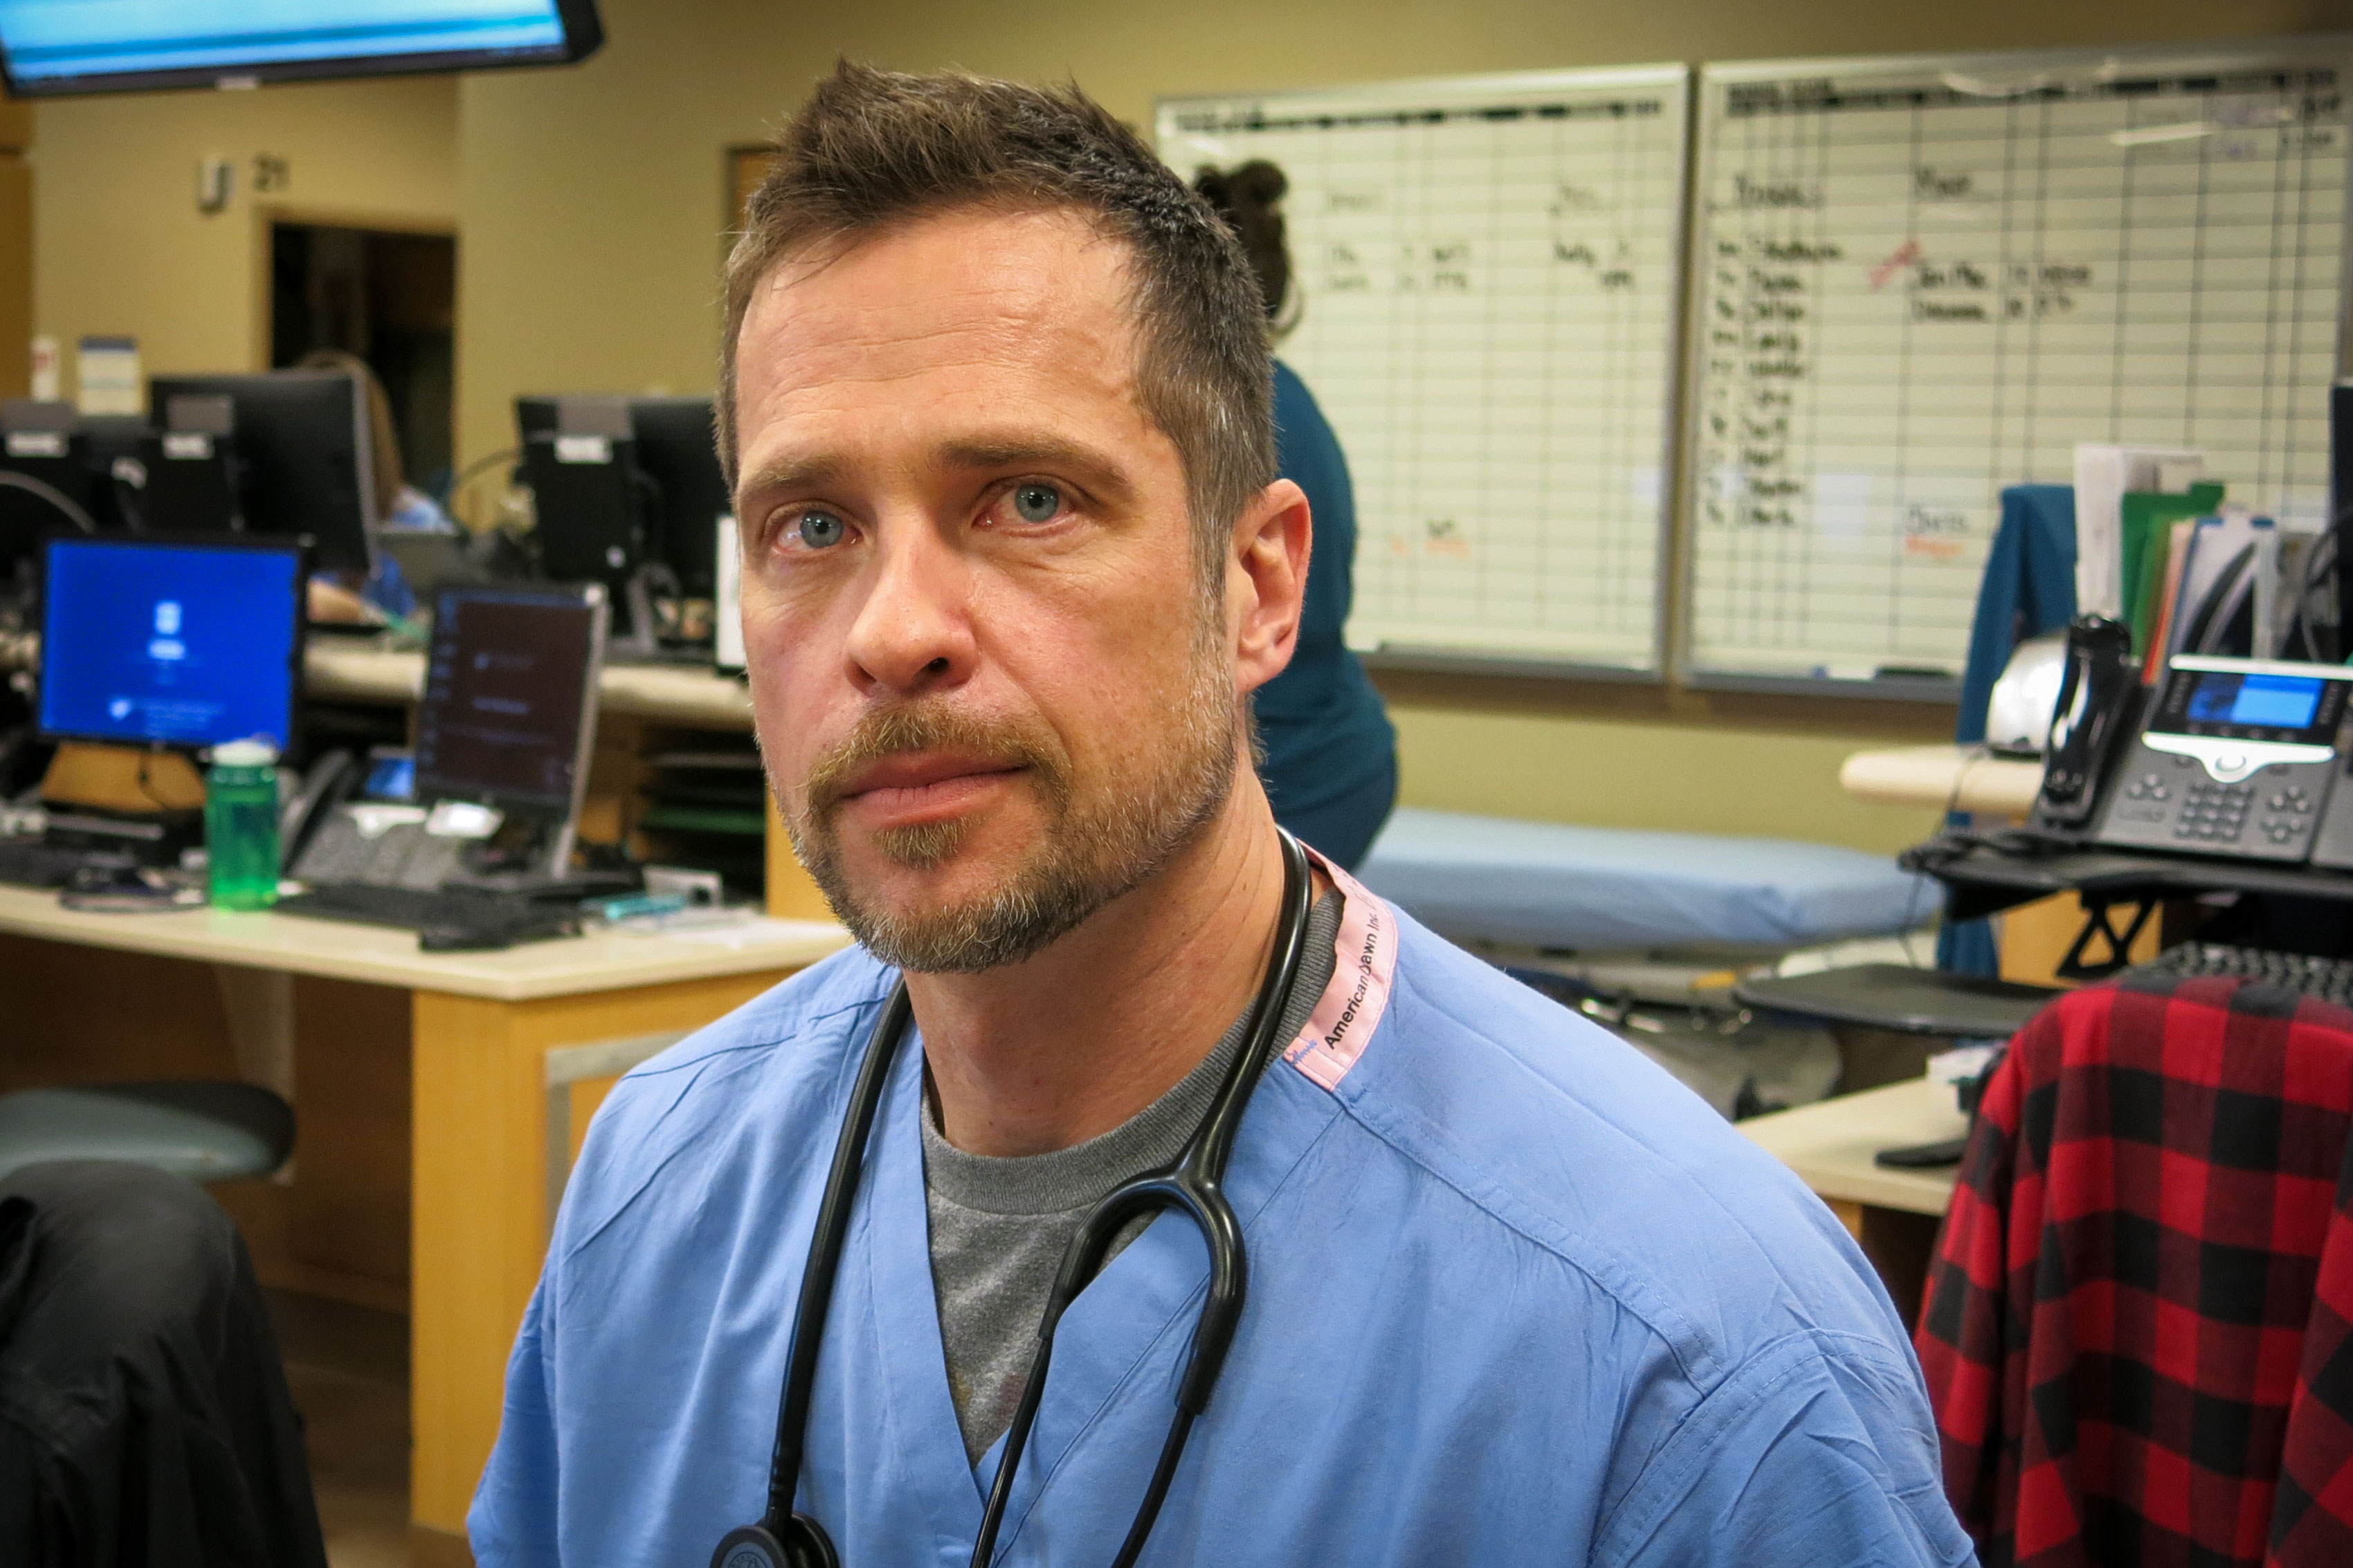 Photo: Opioid Hospital Pilot 2 | Dr. Peter Bakes - JDaley